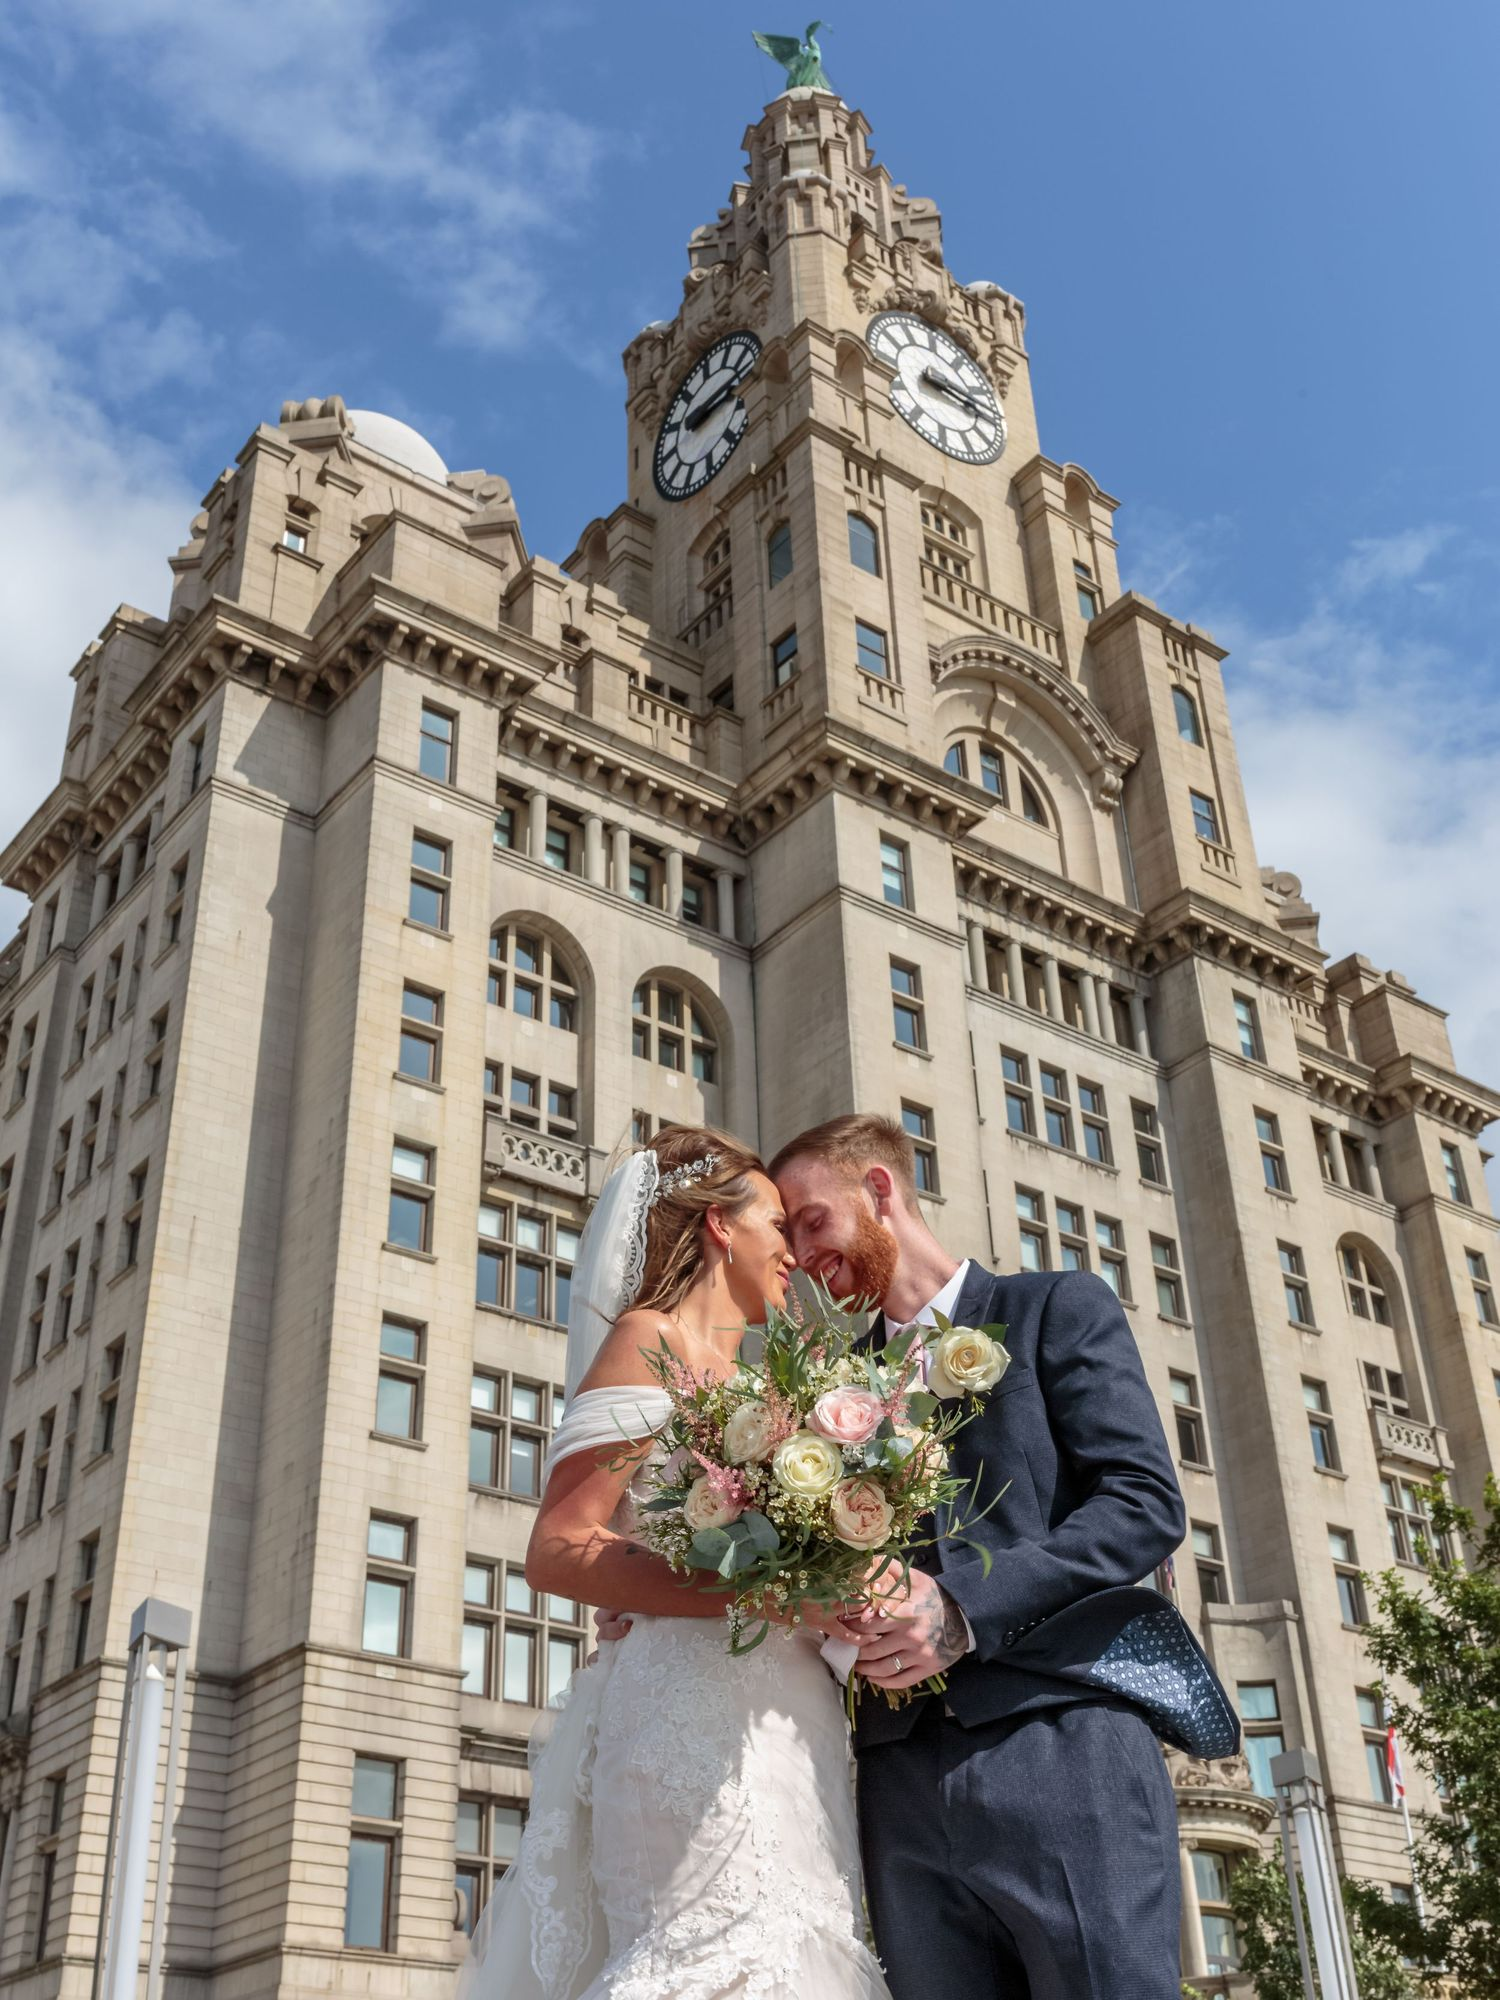 bride and groom kissing in front of the liver buildings on liverpools iconic water front